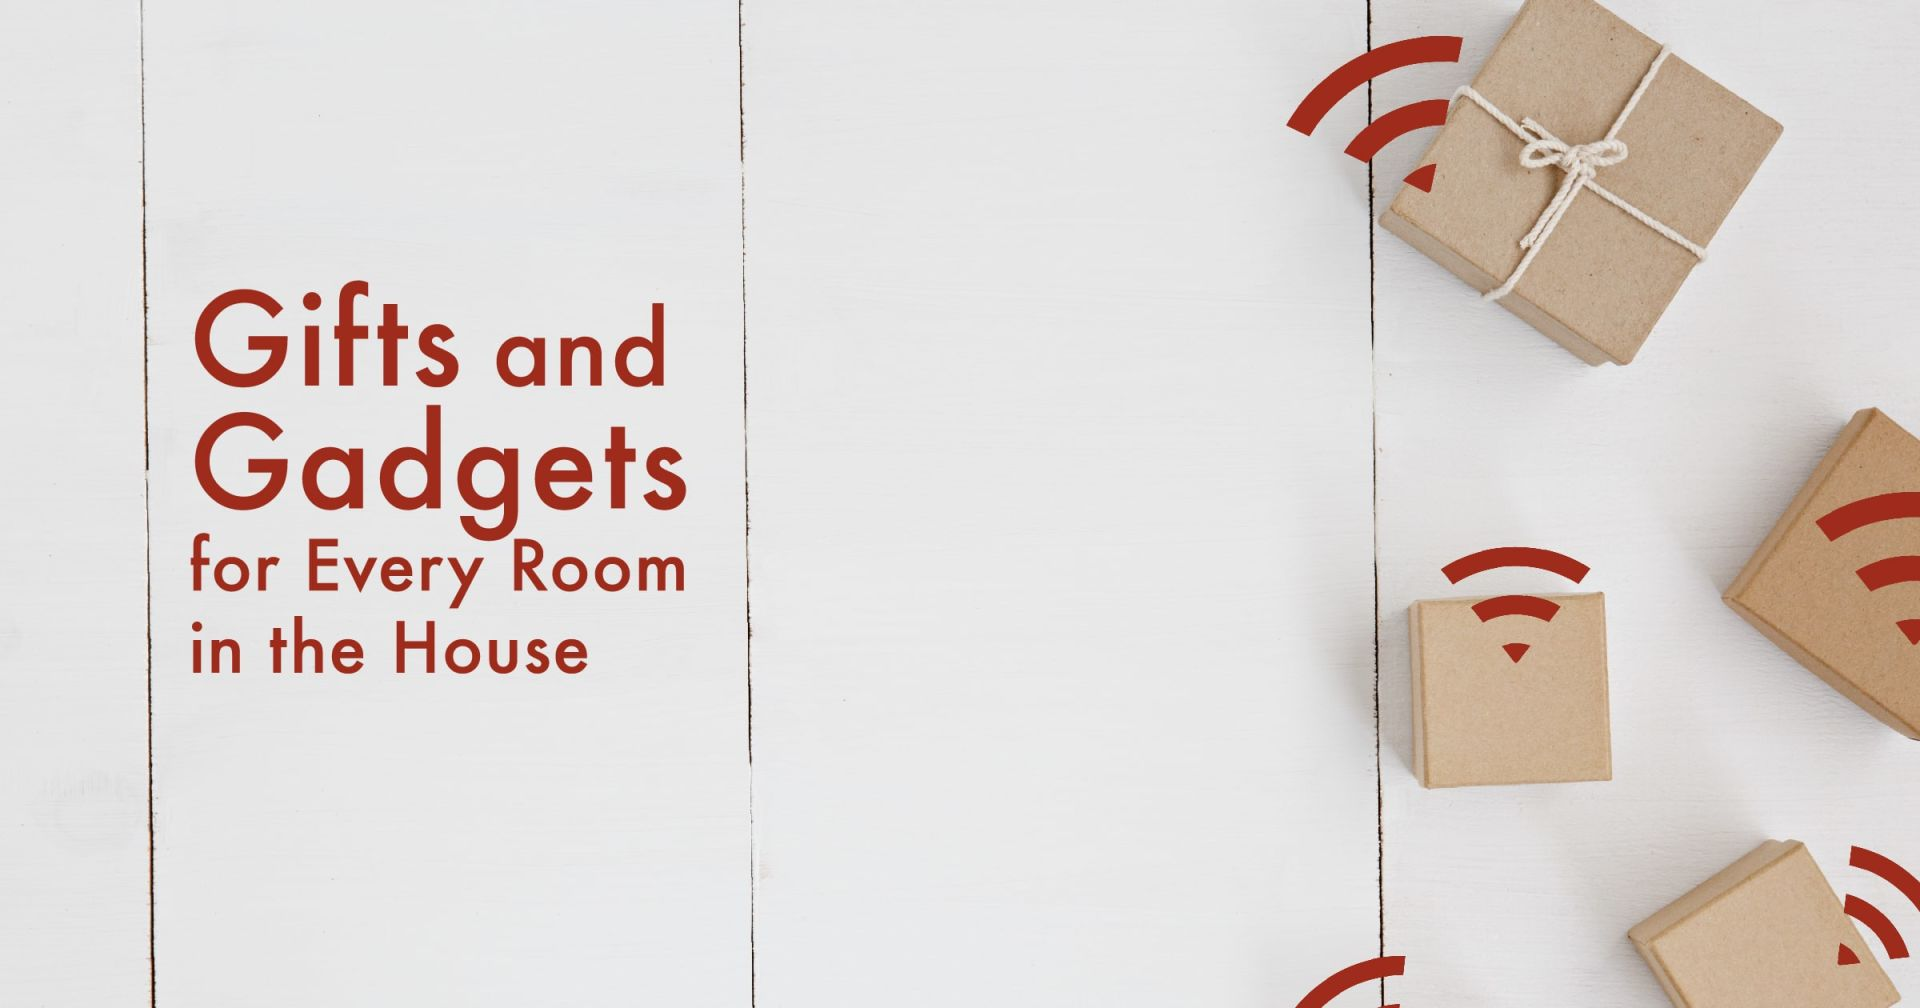 Gifts and Gadgets for Every Room in the House